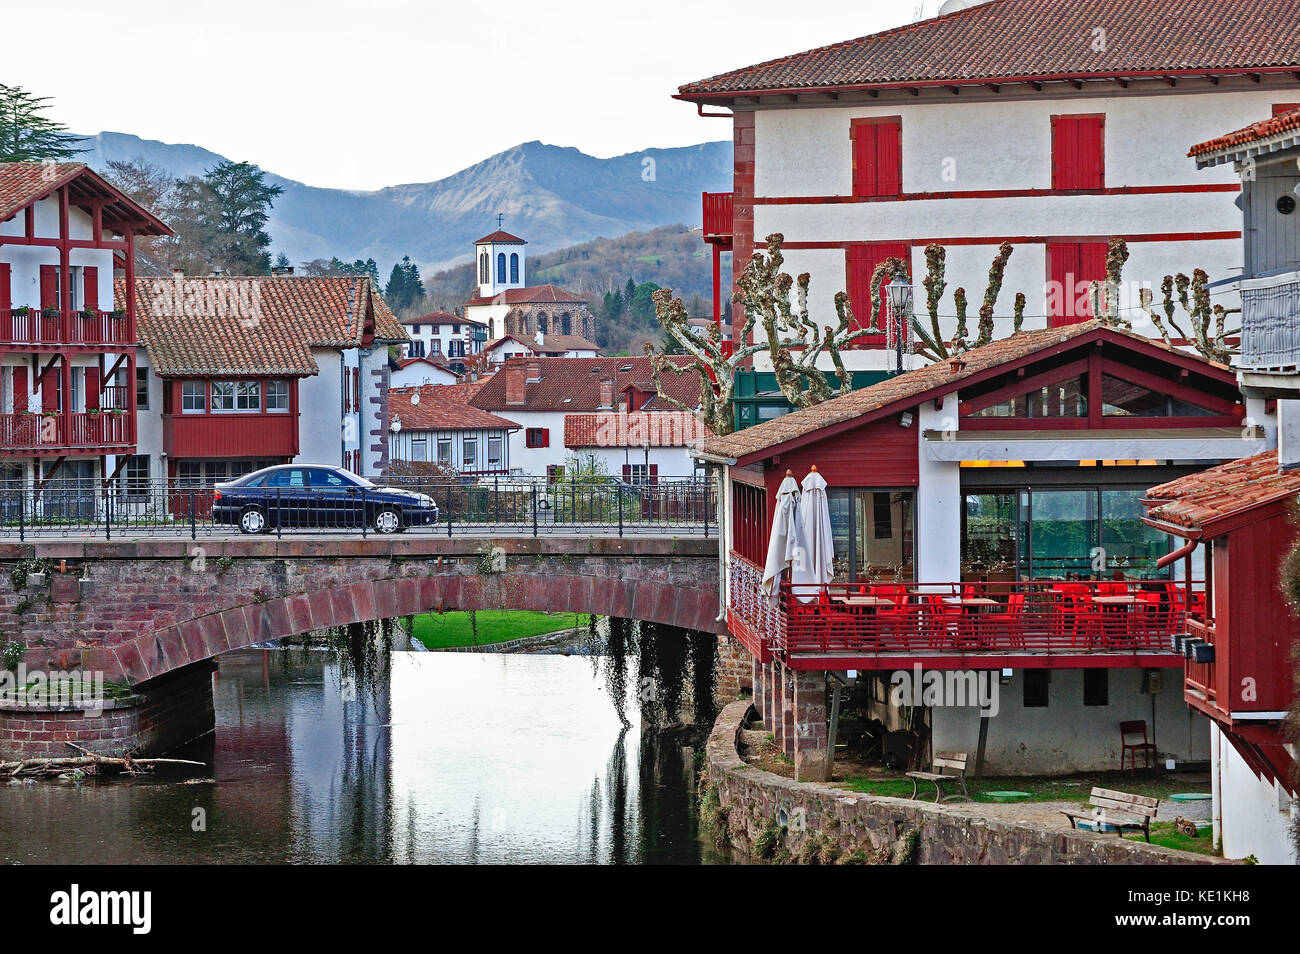 St Jean De Pied De Port Saint Jean Pied De Port Stock Photos Saint Jean Pied De Port